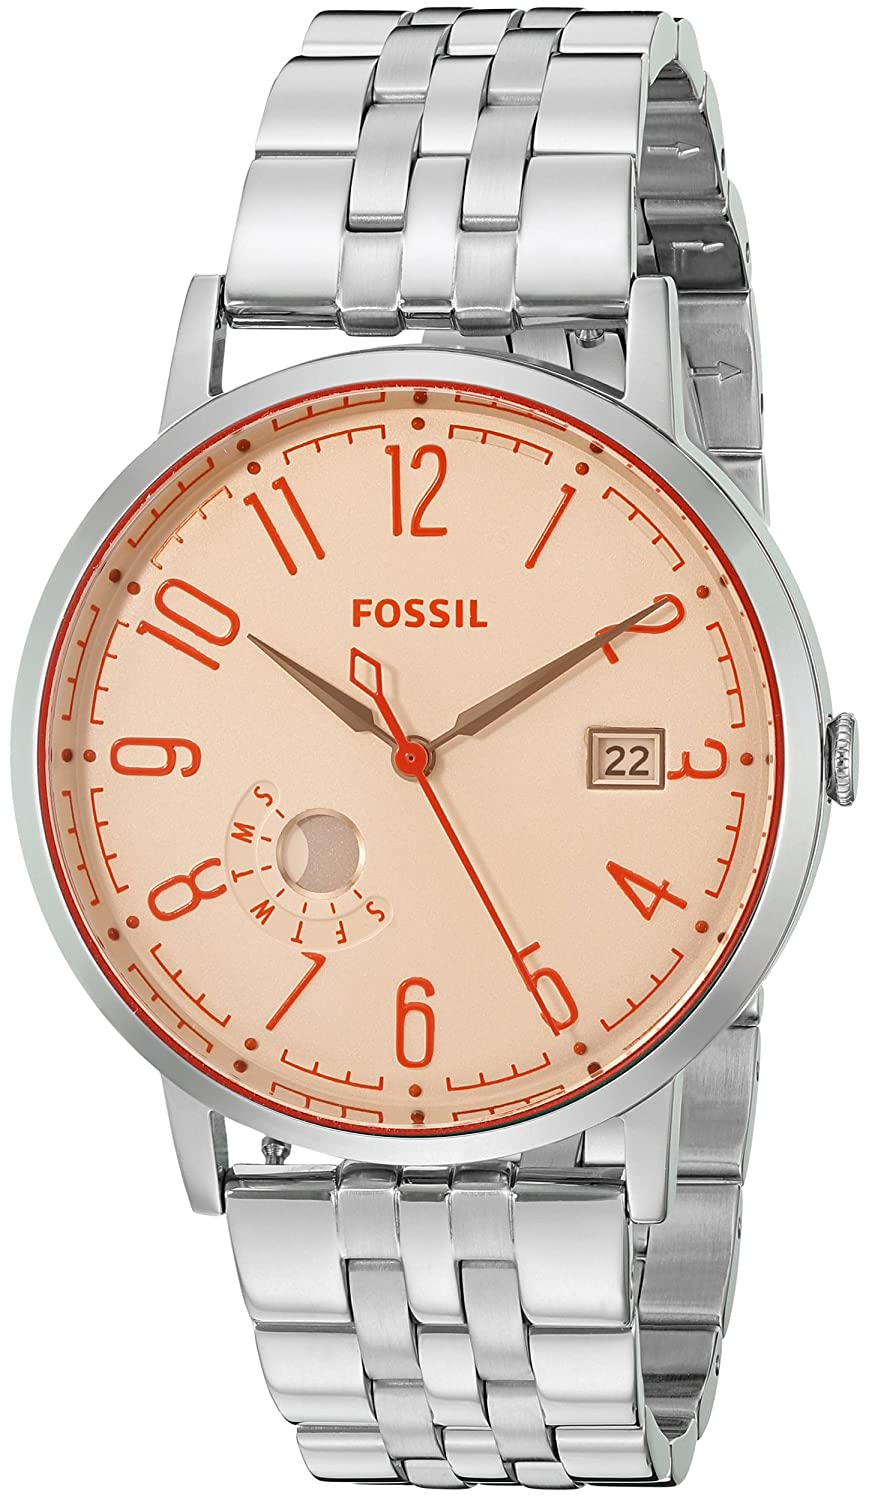 Fossil Watches for Men & Women low price image 3